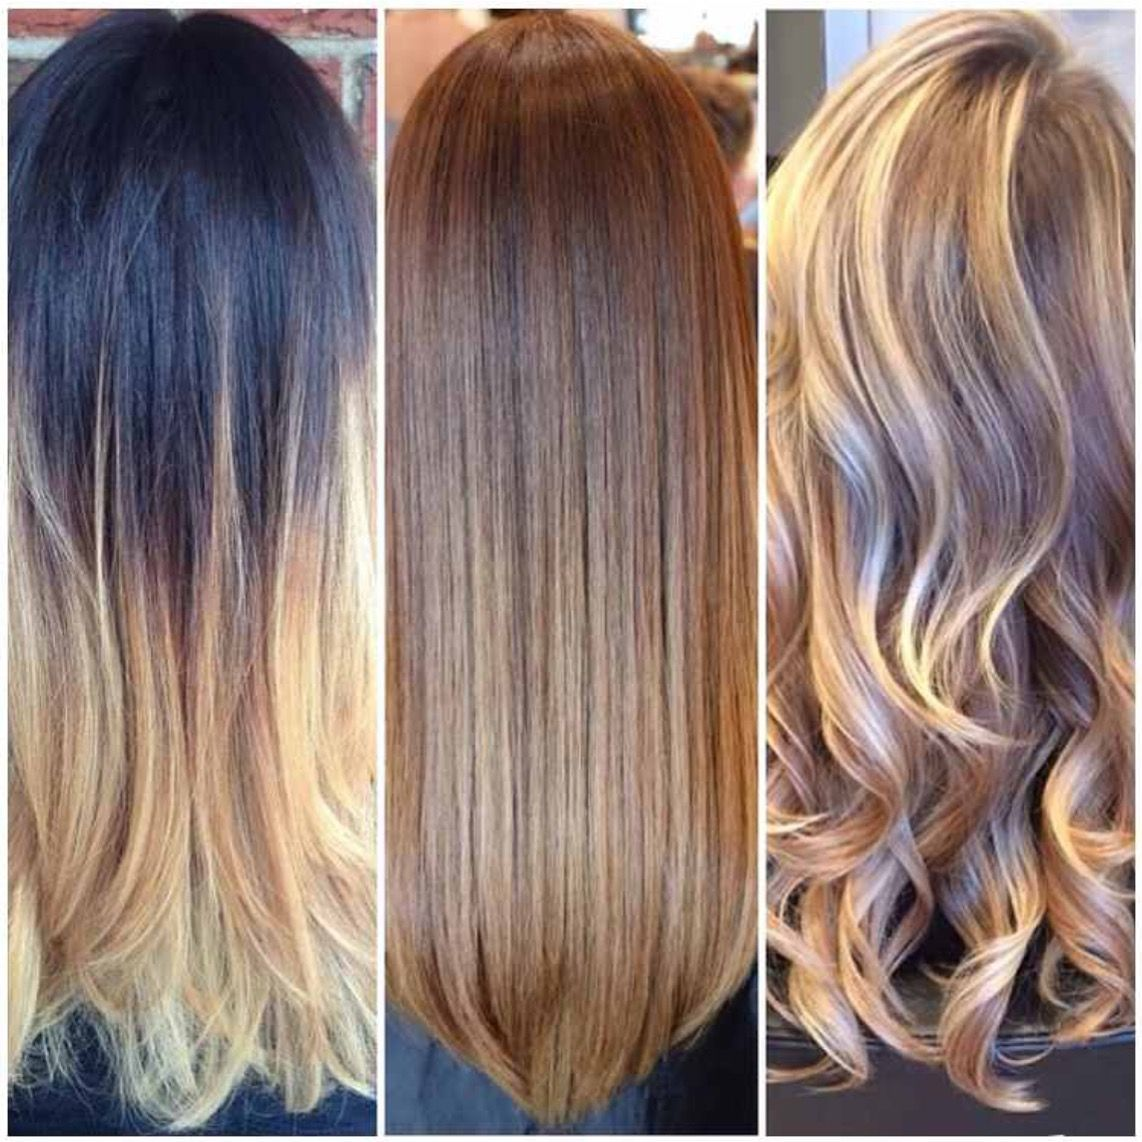 2017 Haircolor Trends Ombré Color Melt Sombre Know The Difference Of These Three Dark To Light I M Stuck Between But Then Ombre Looks